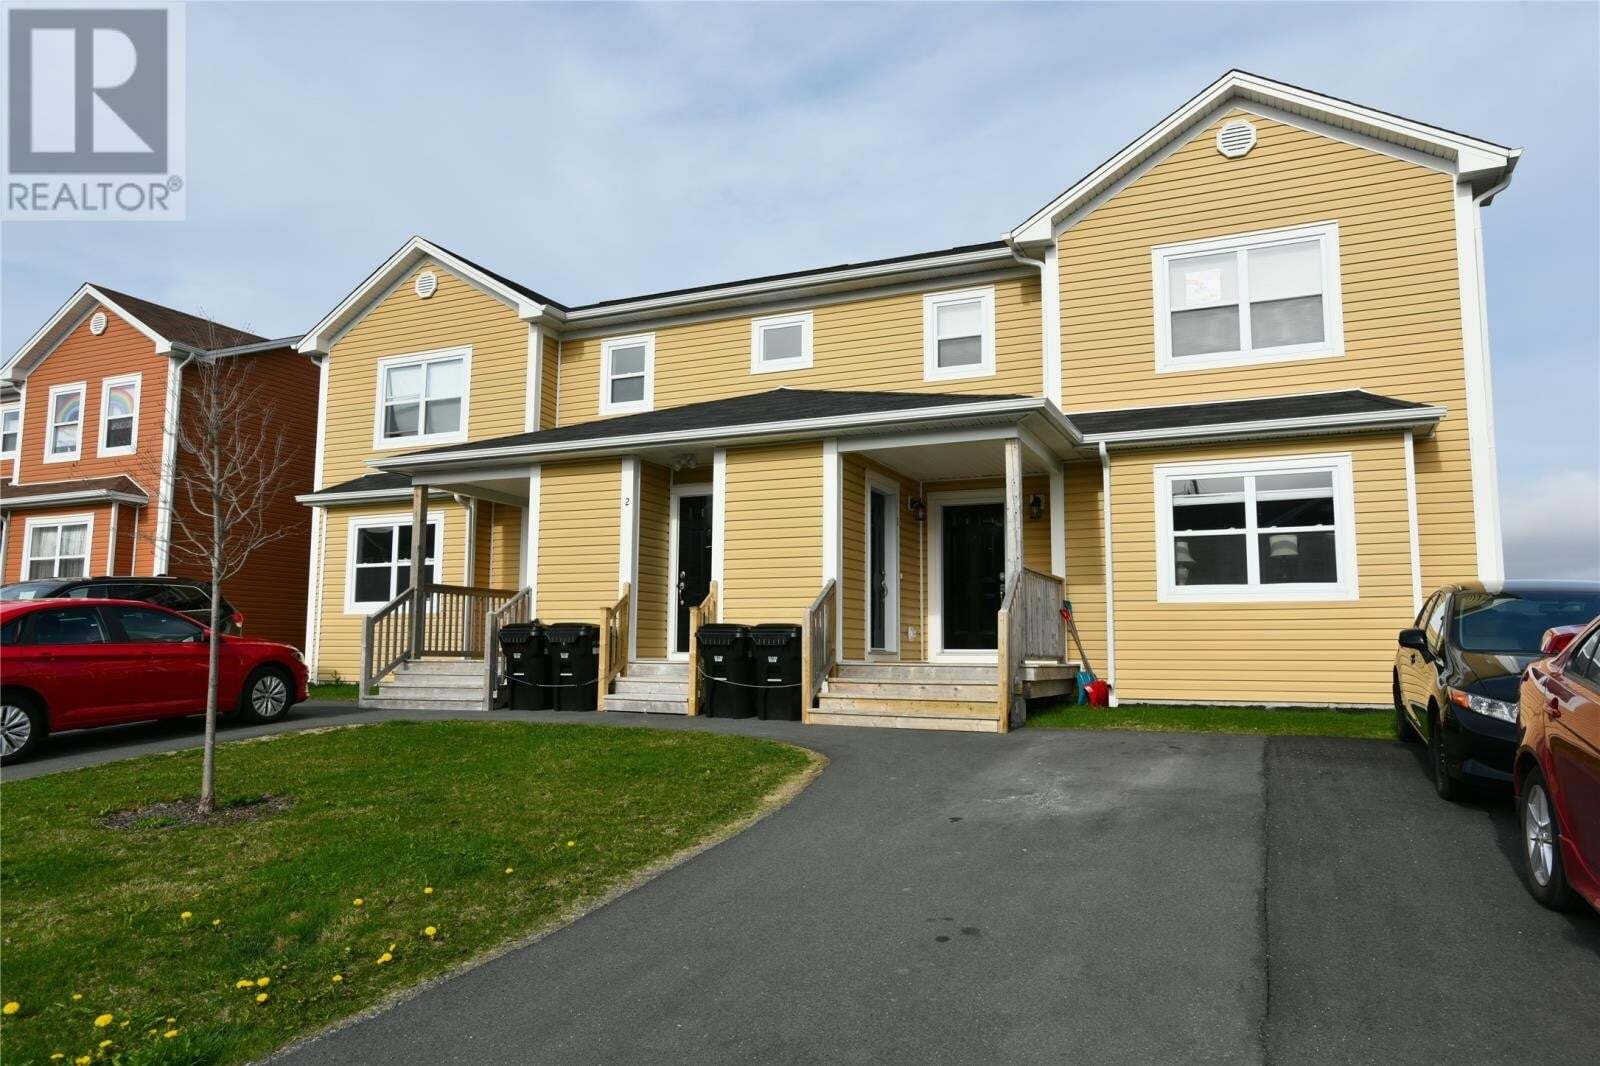 House for sale at 2 Guernsey Pl St. John's Newfoundland - MLS: 1214317